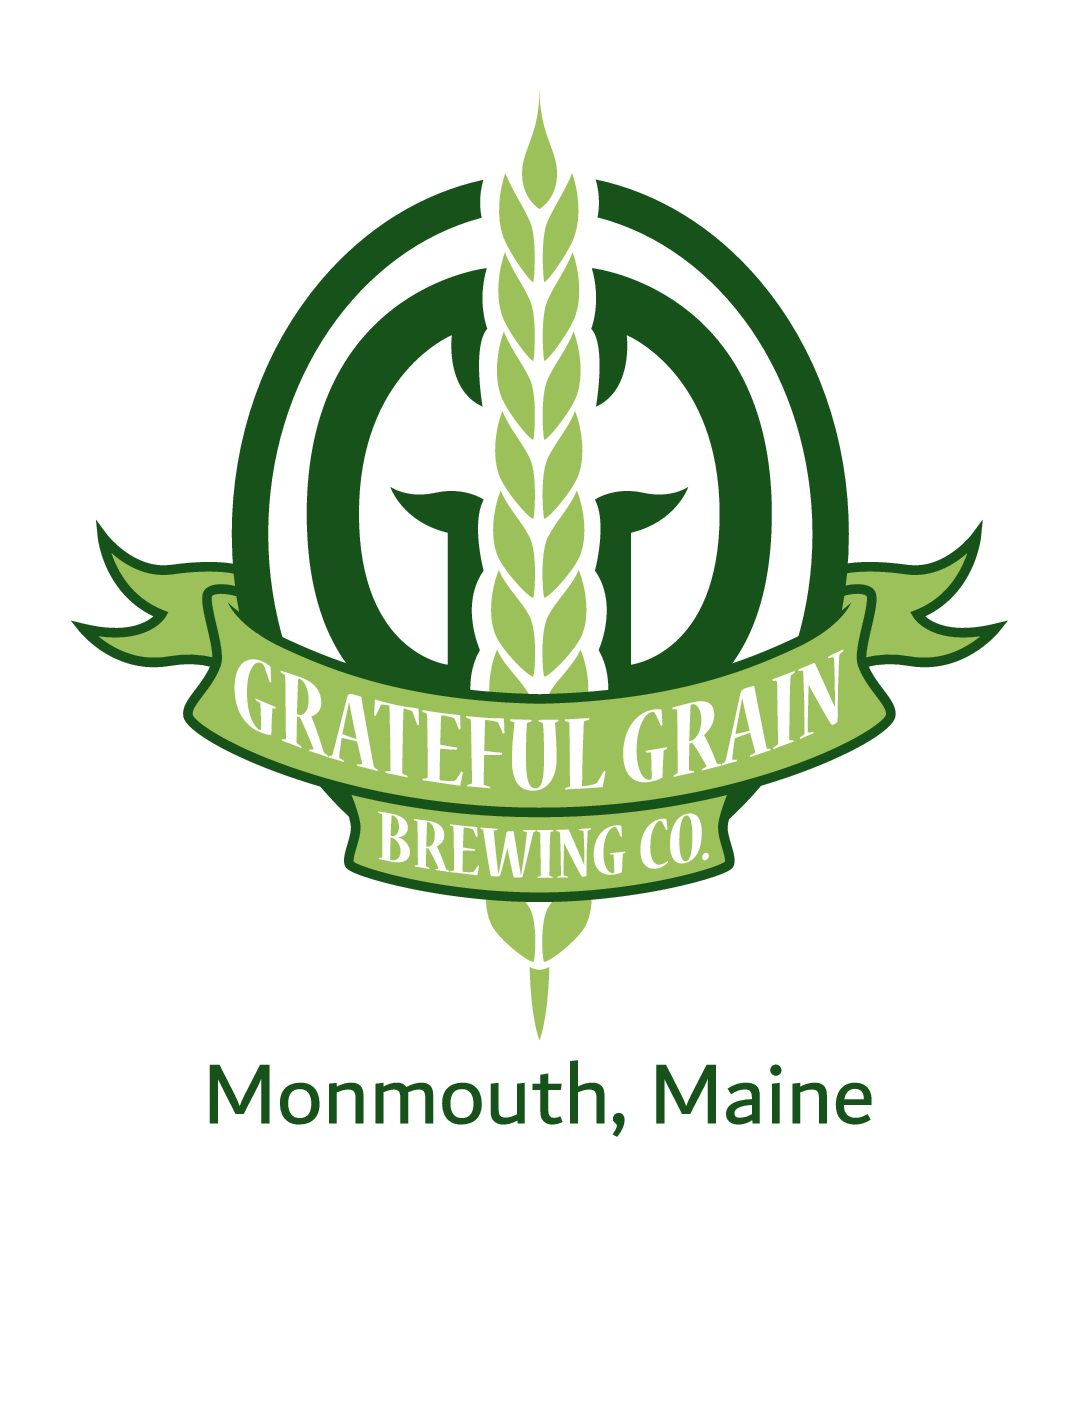 Grateful Grain Brewing Company